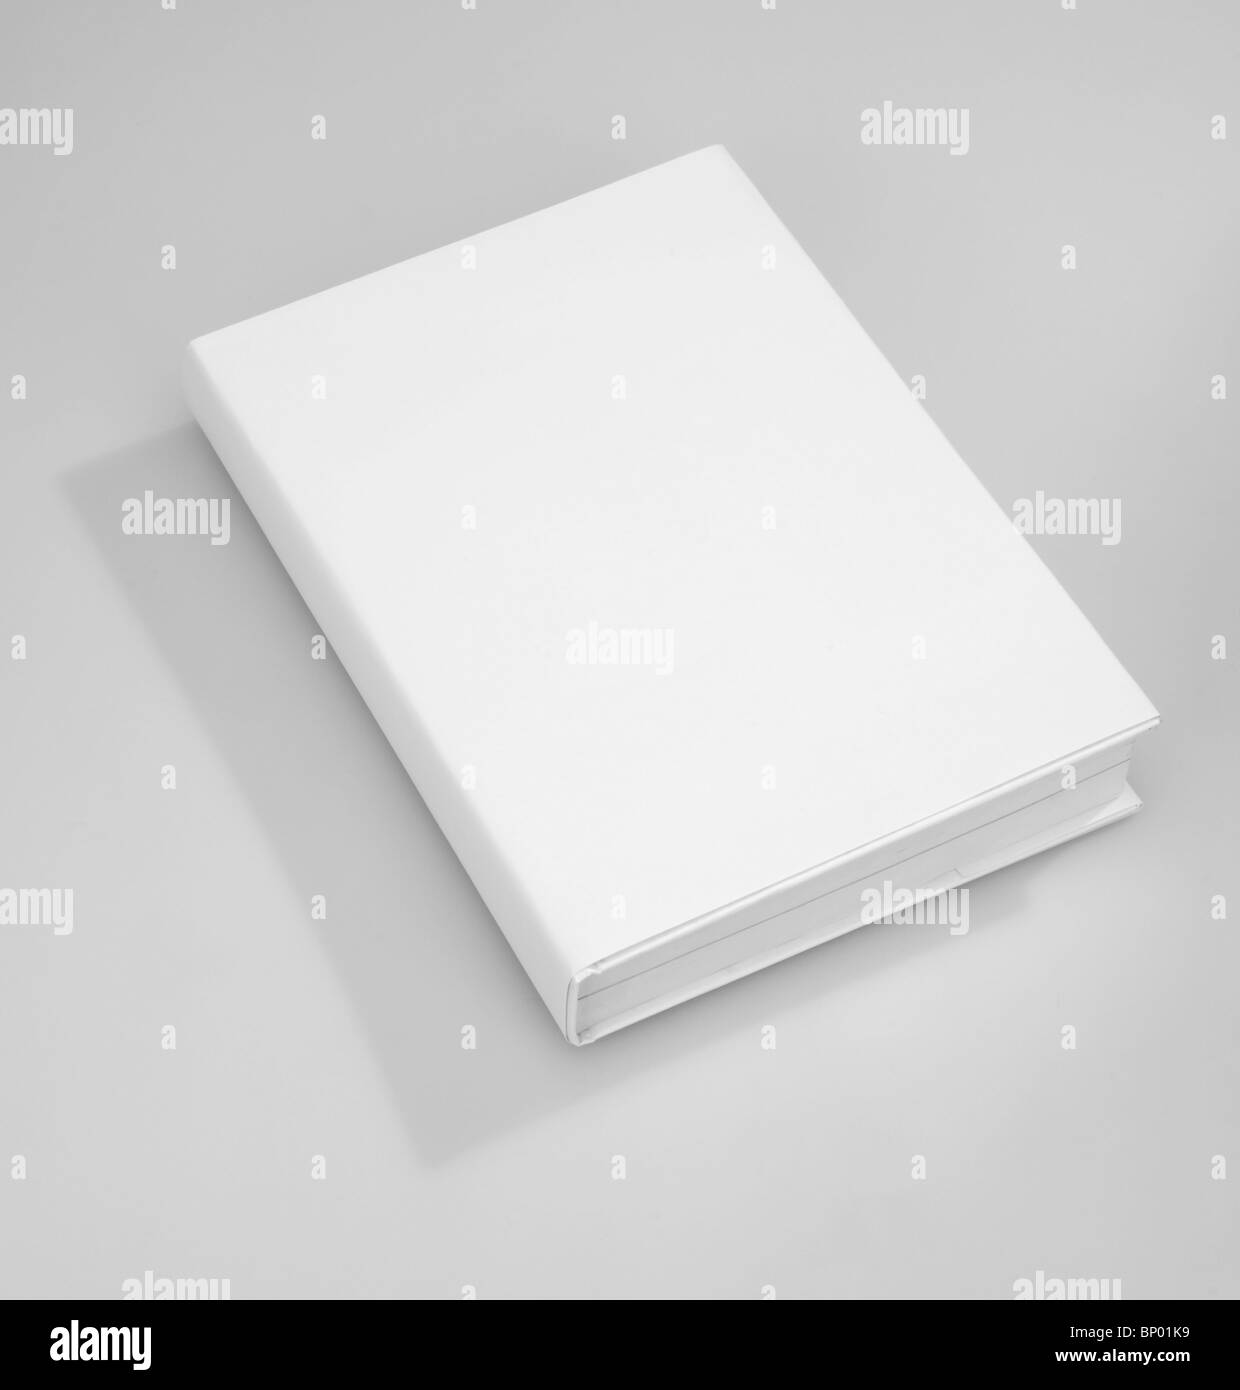 Blank book cover white - Stock Image